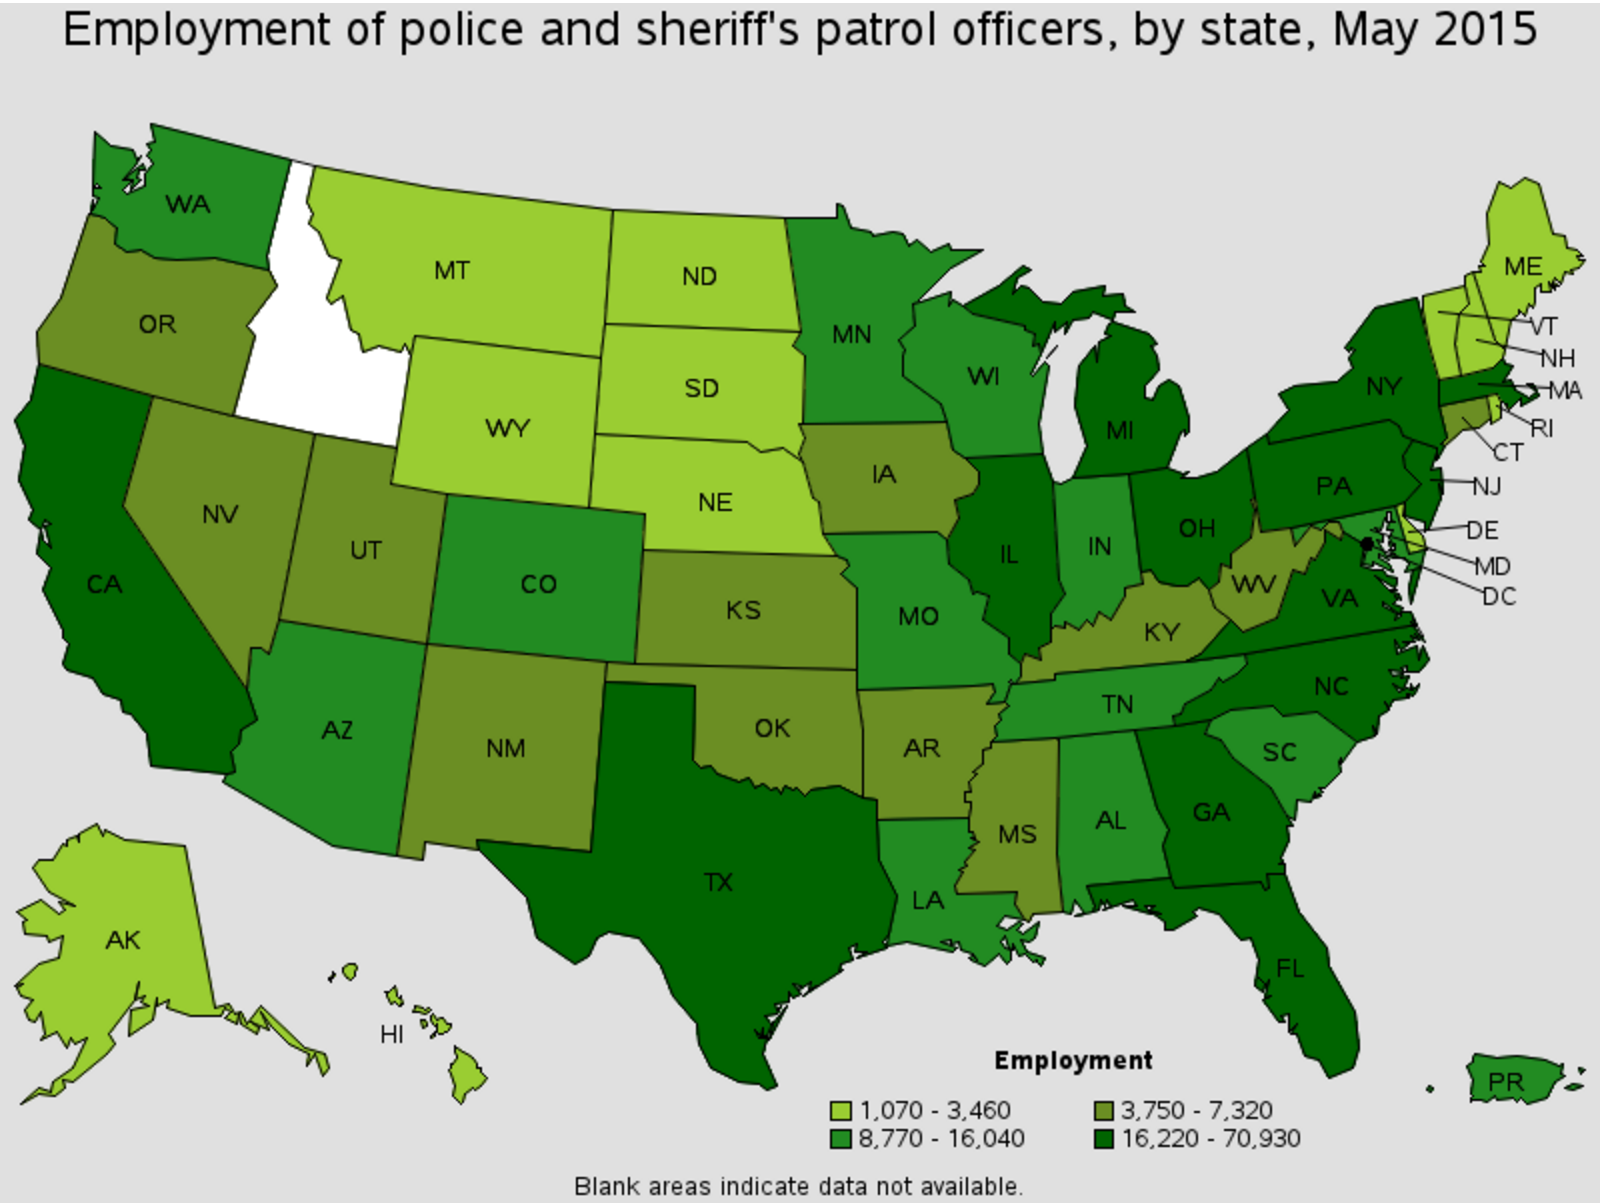 Tampa police officer career outlook by state